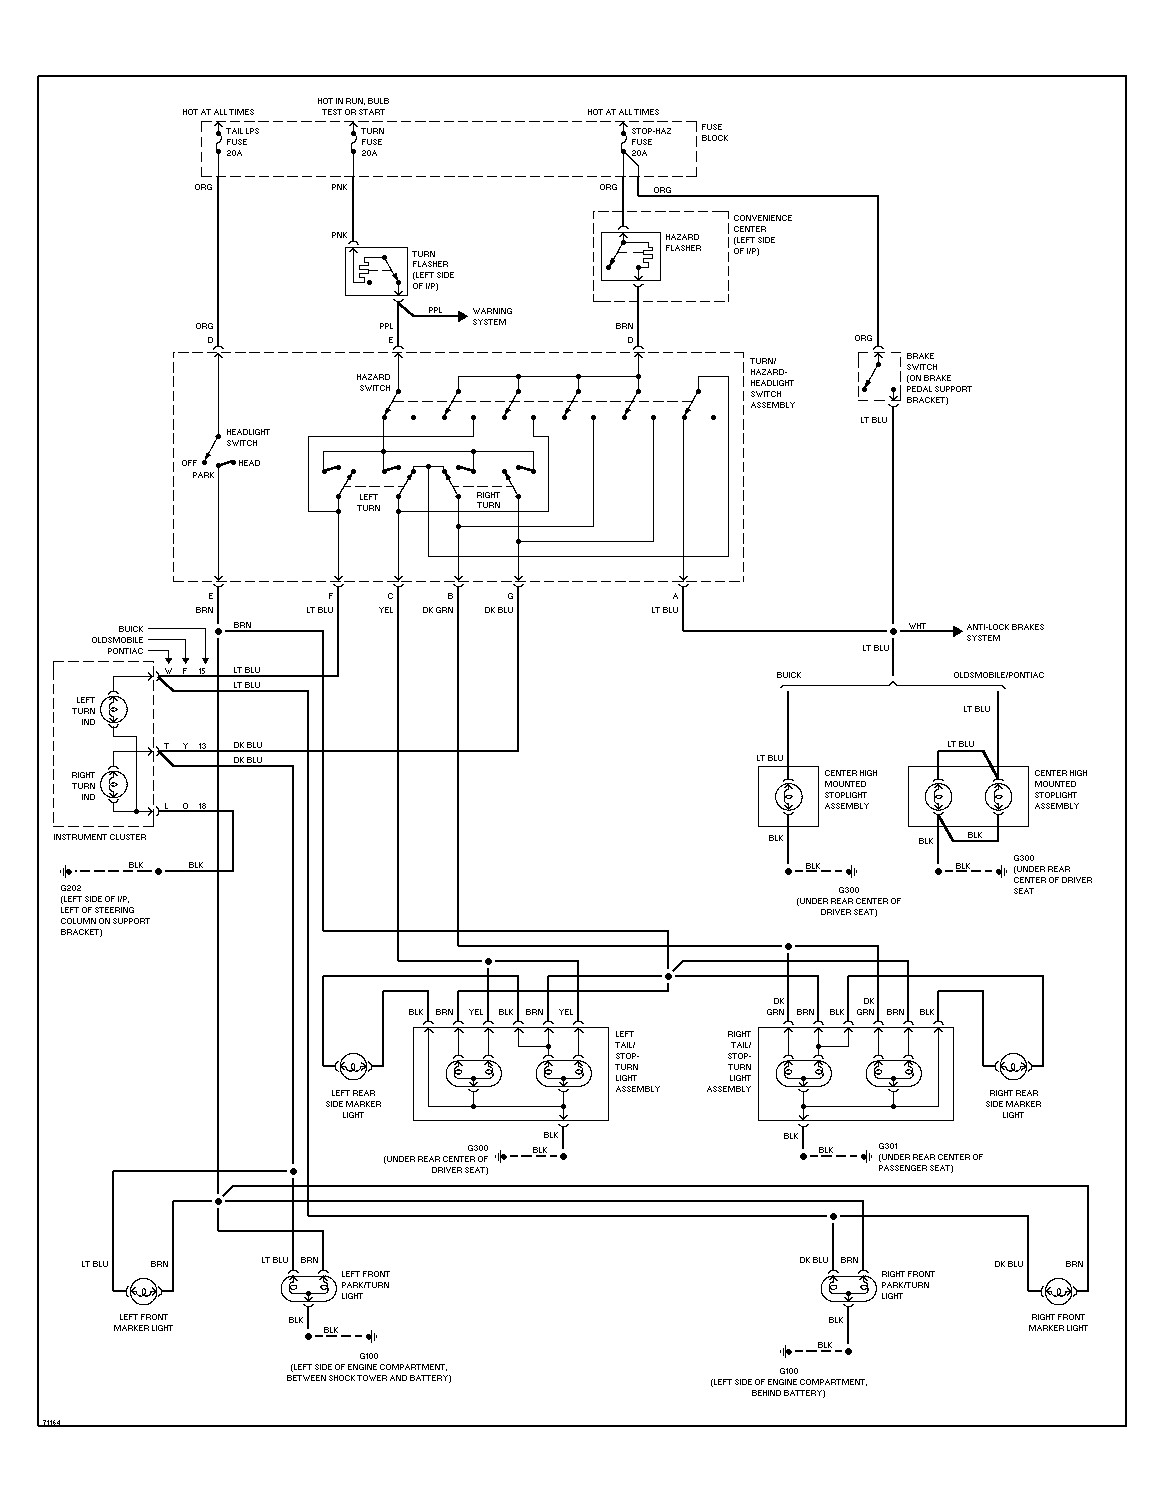 2005 Pontiac Grand Am Wiring Diagram